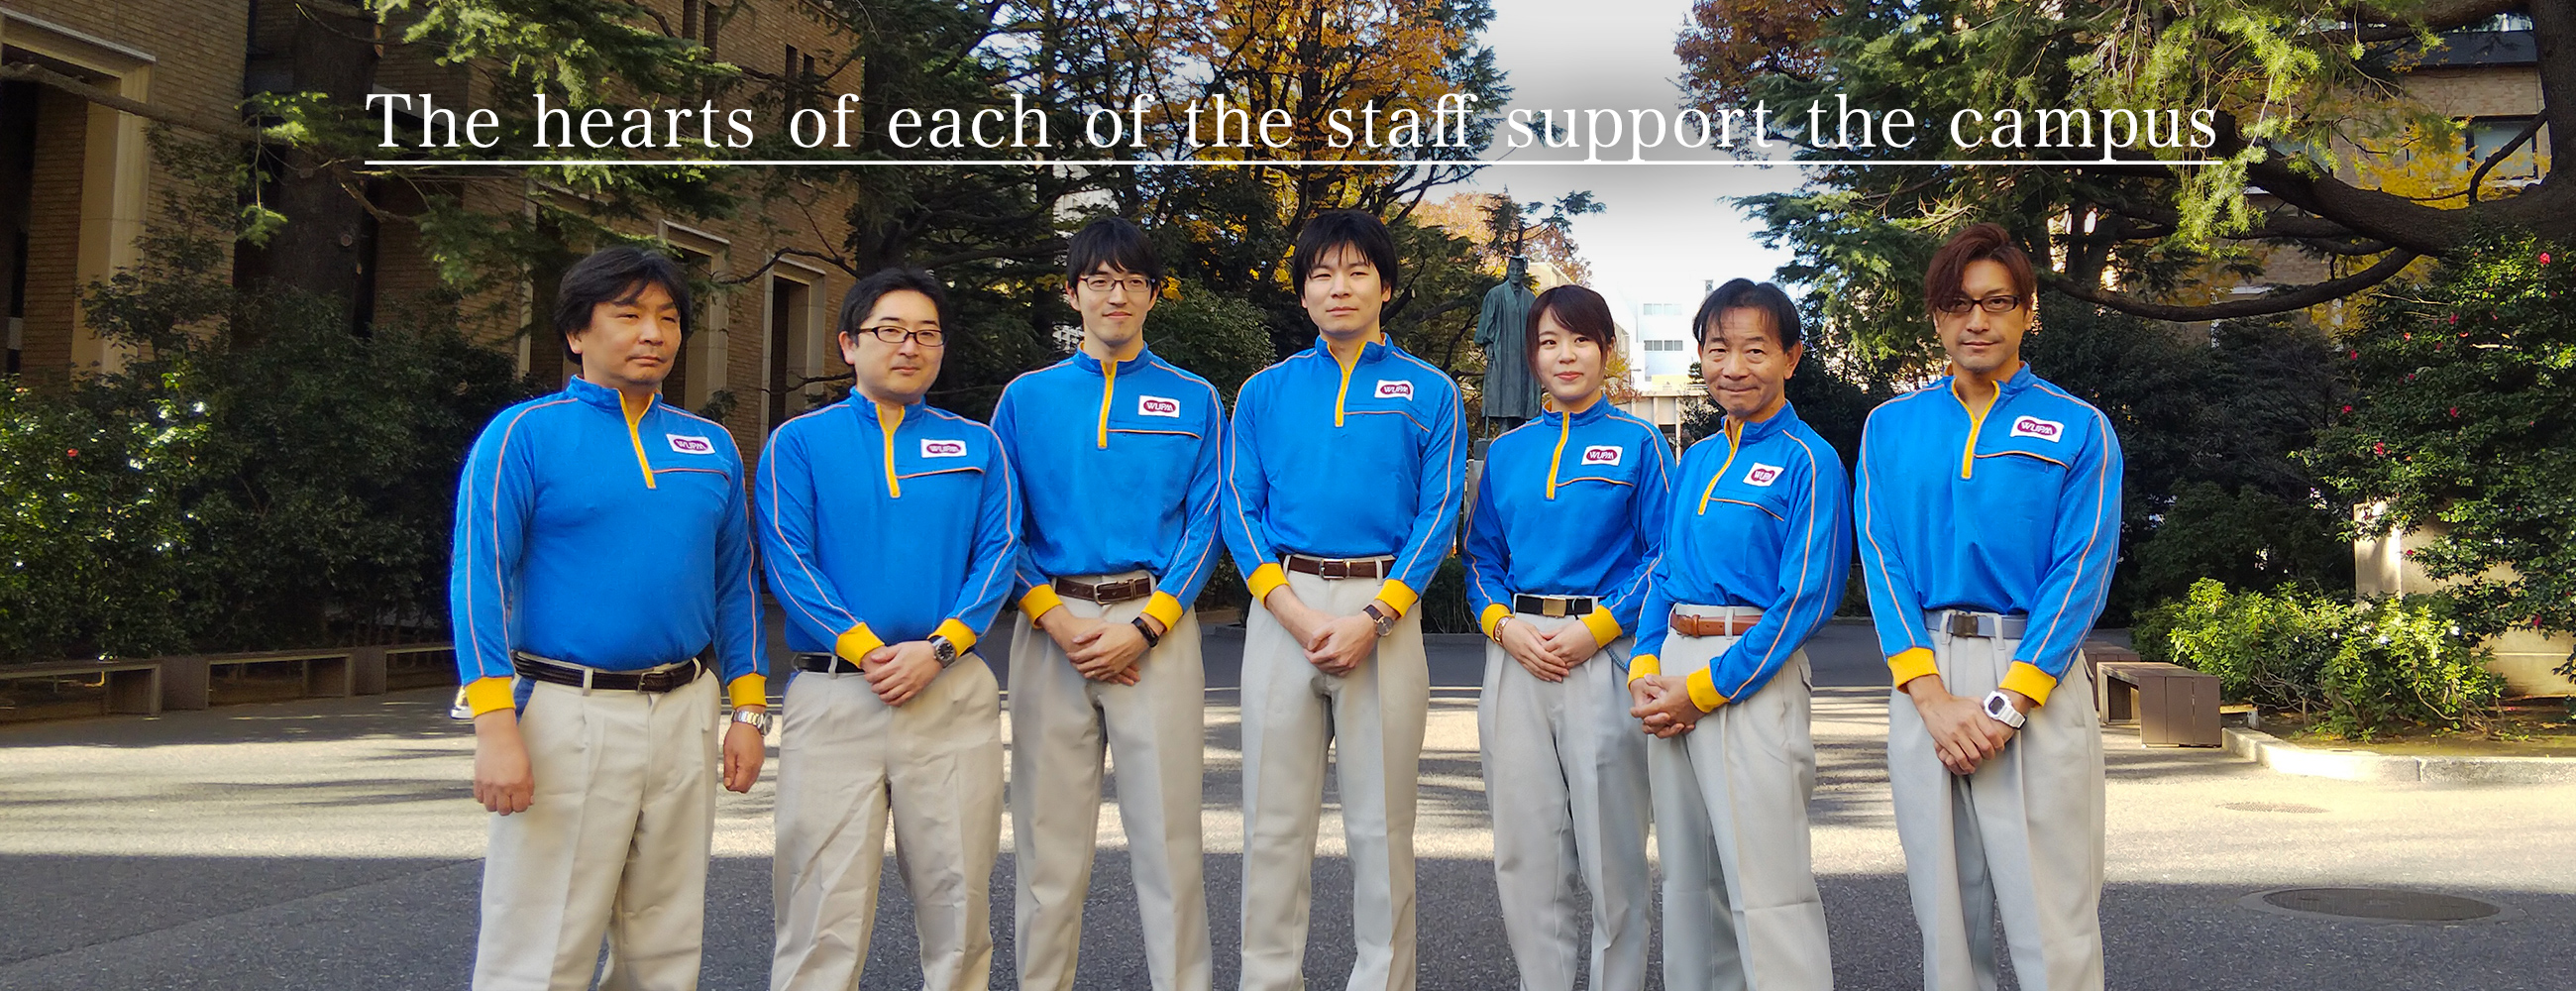 The hearts of each of the staff support the campus